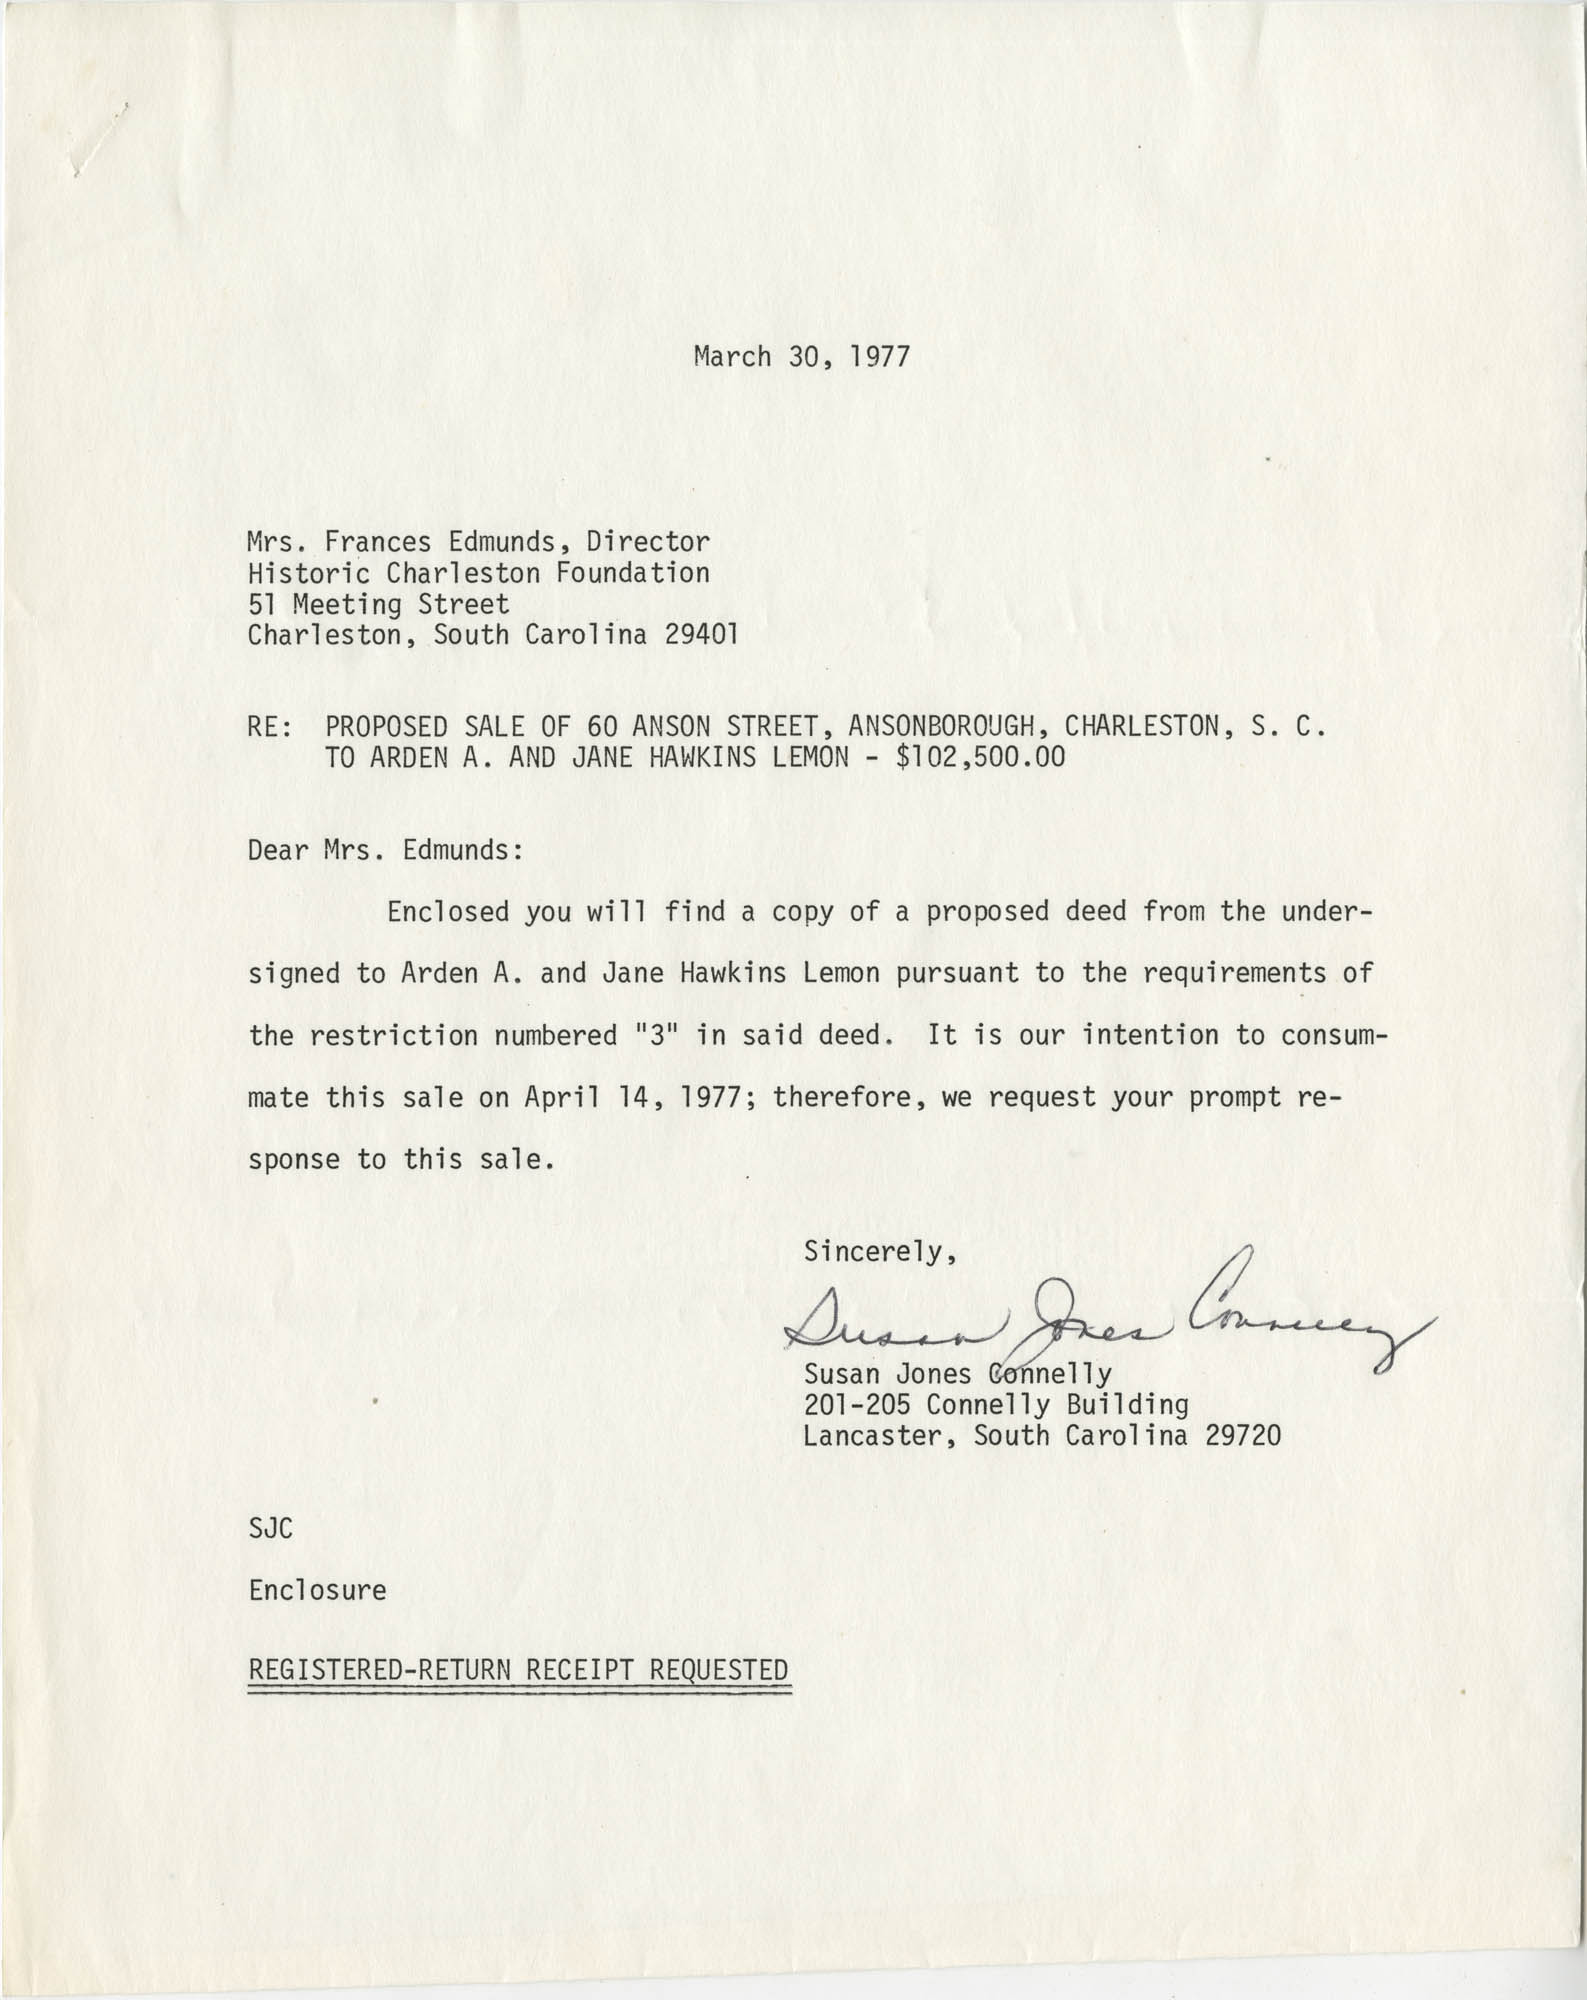 Letter from Susan Jones Connelly to Mrs. Frances Edmunds